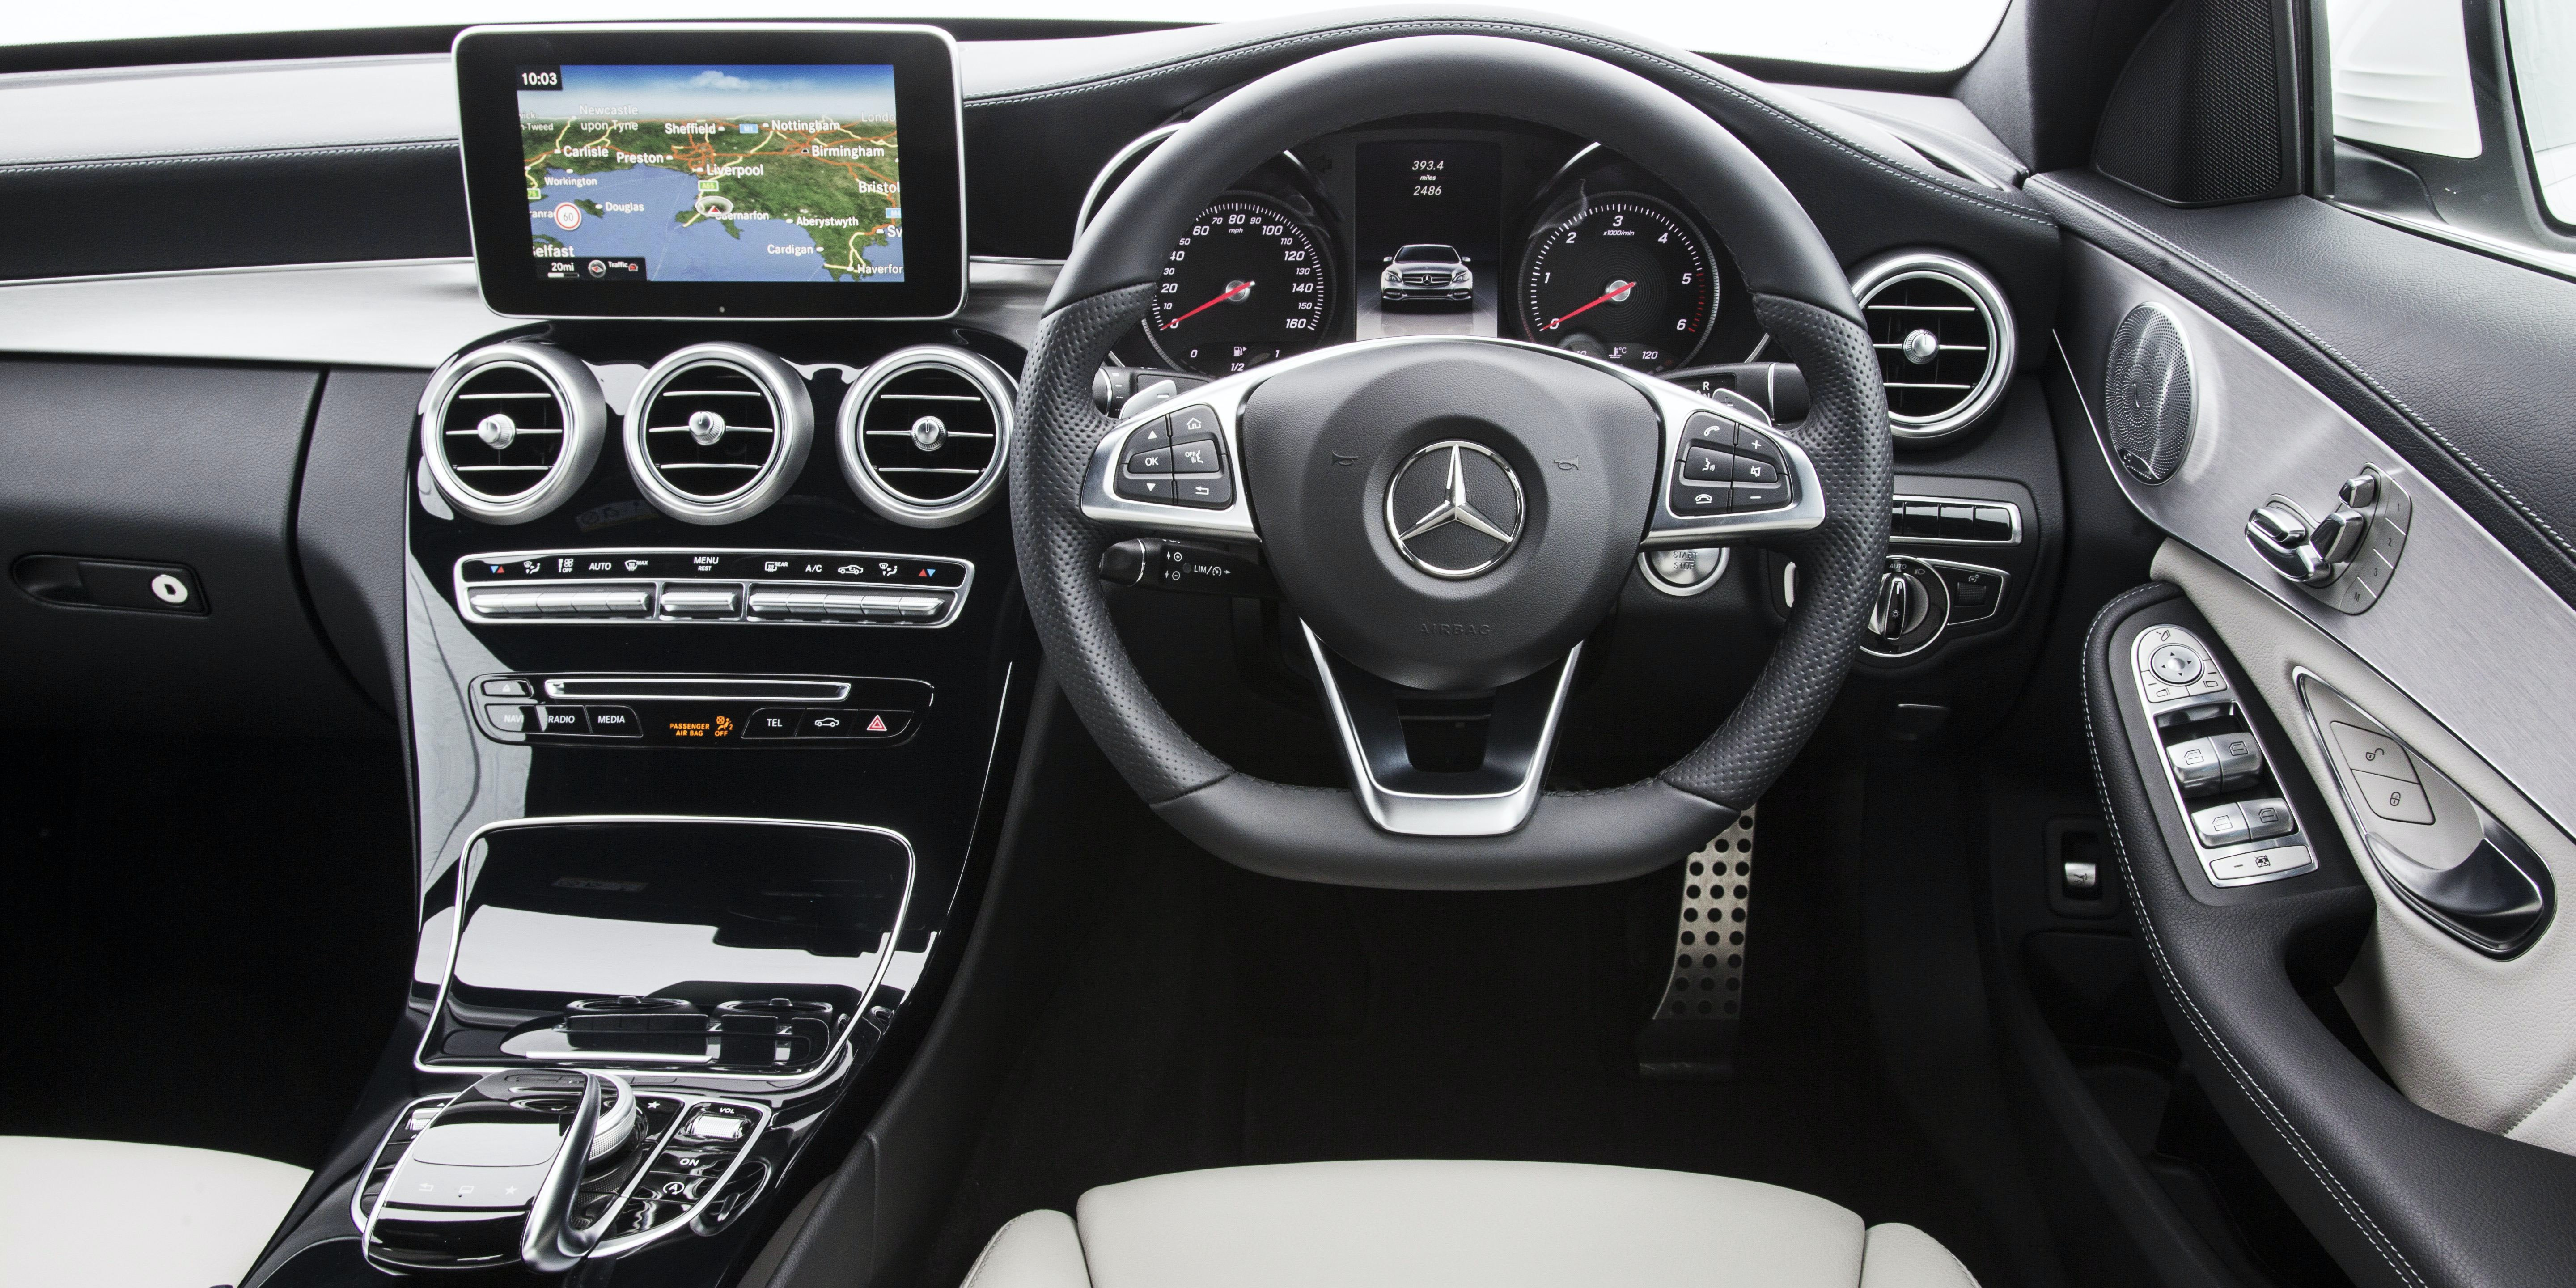 Mercedes C Class (2014 2017) Interior And Infotainment | Carwow